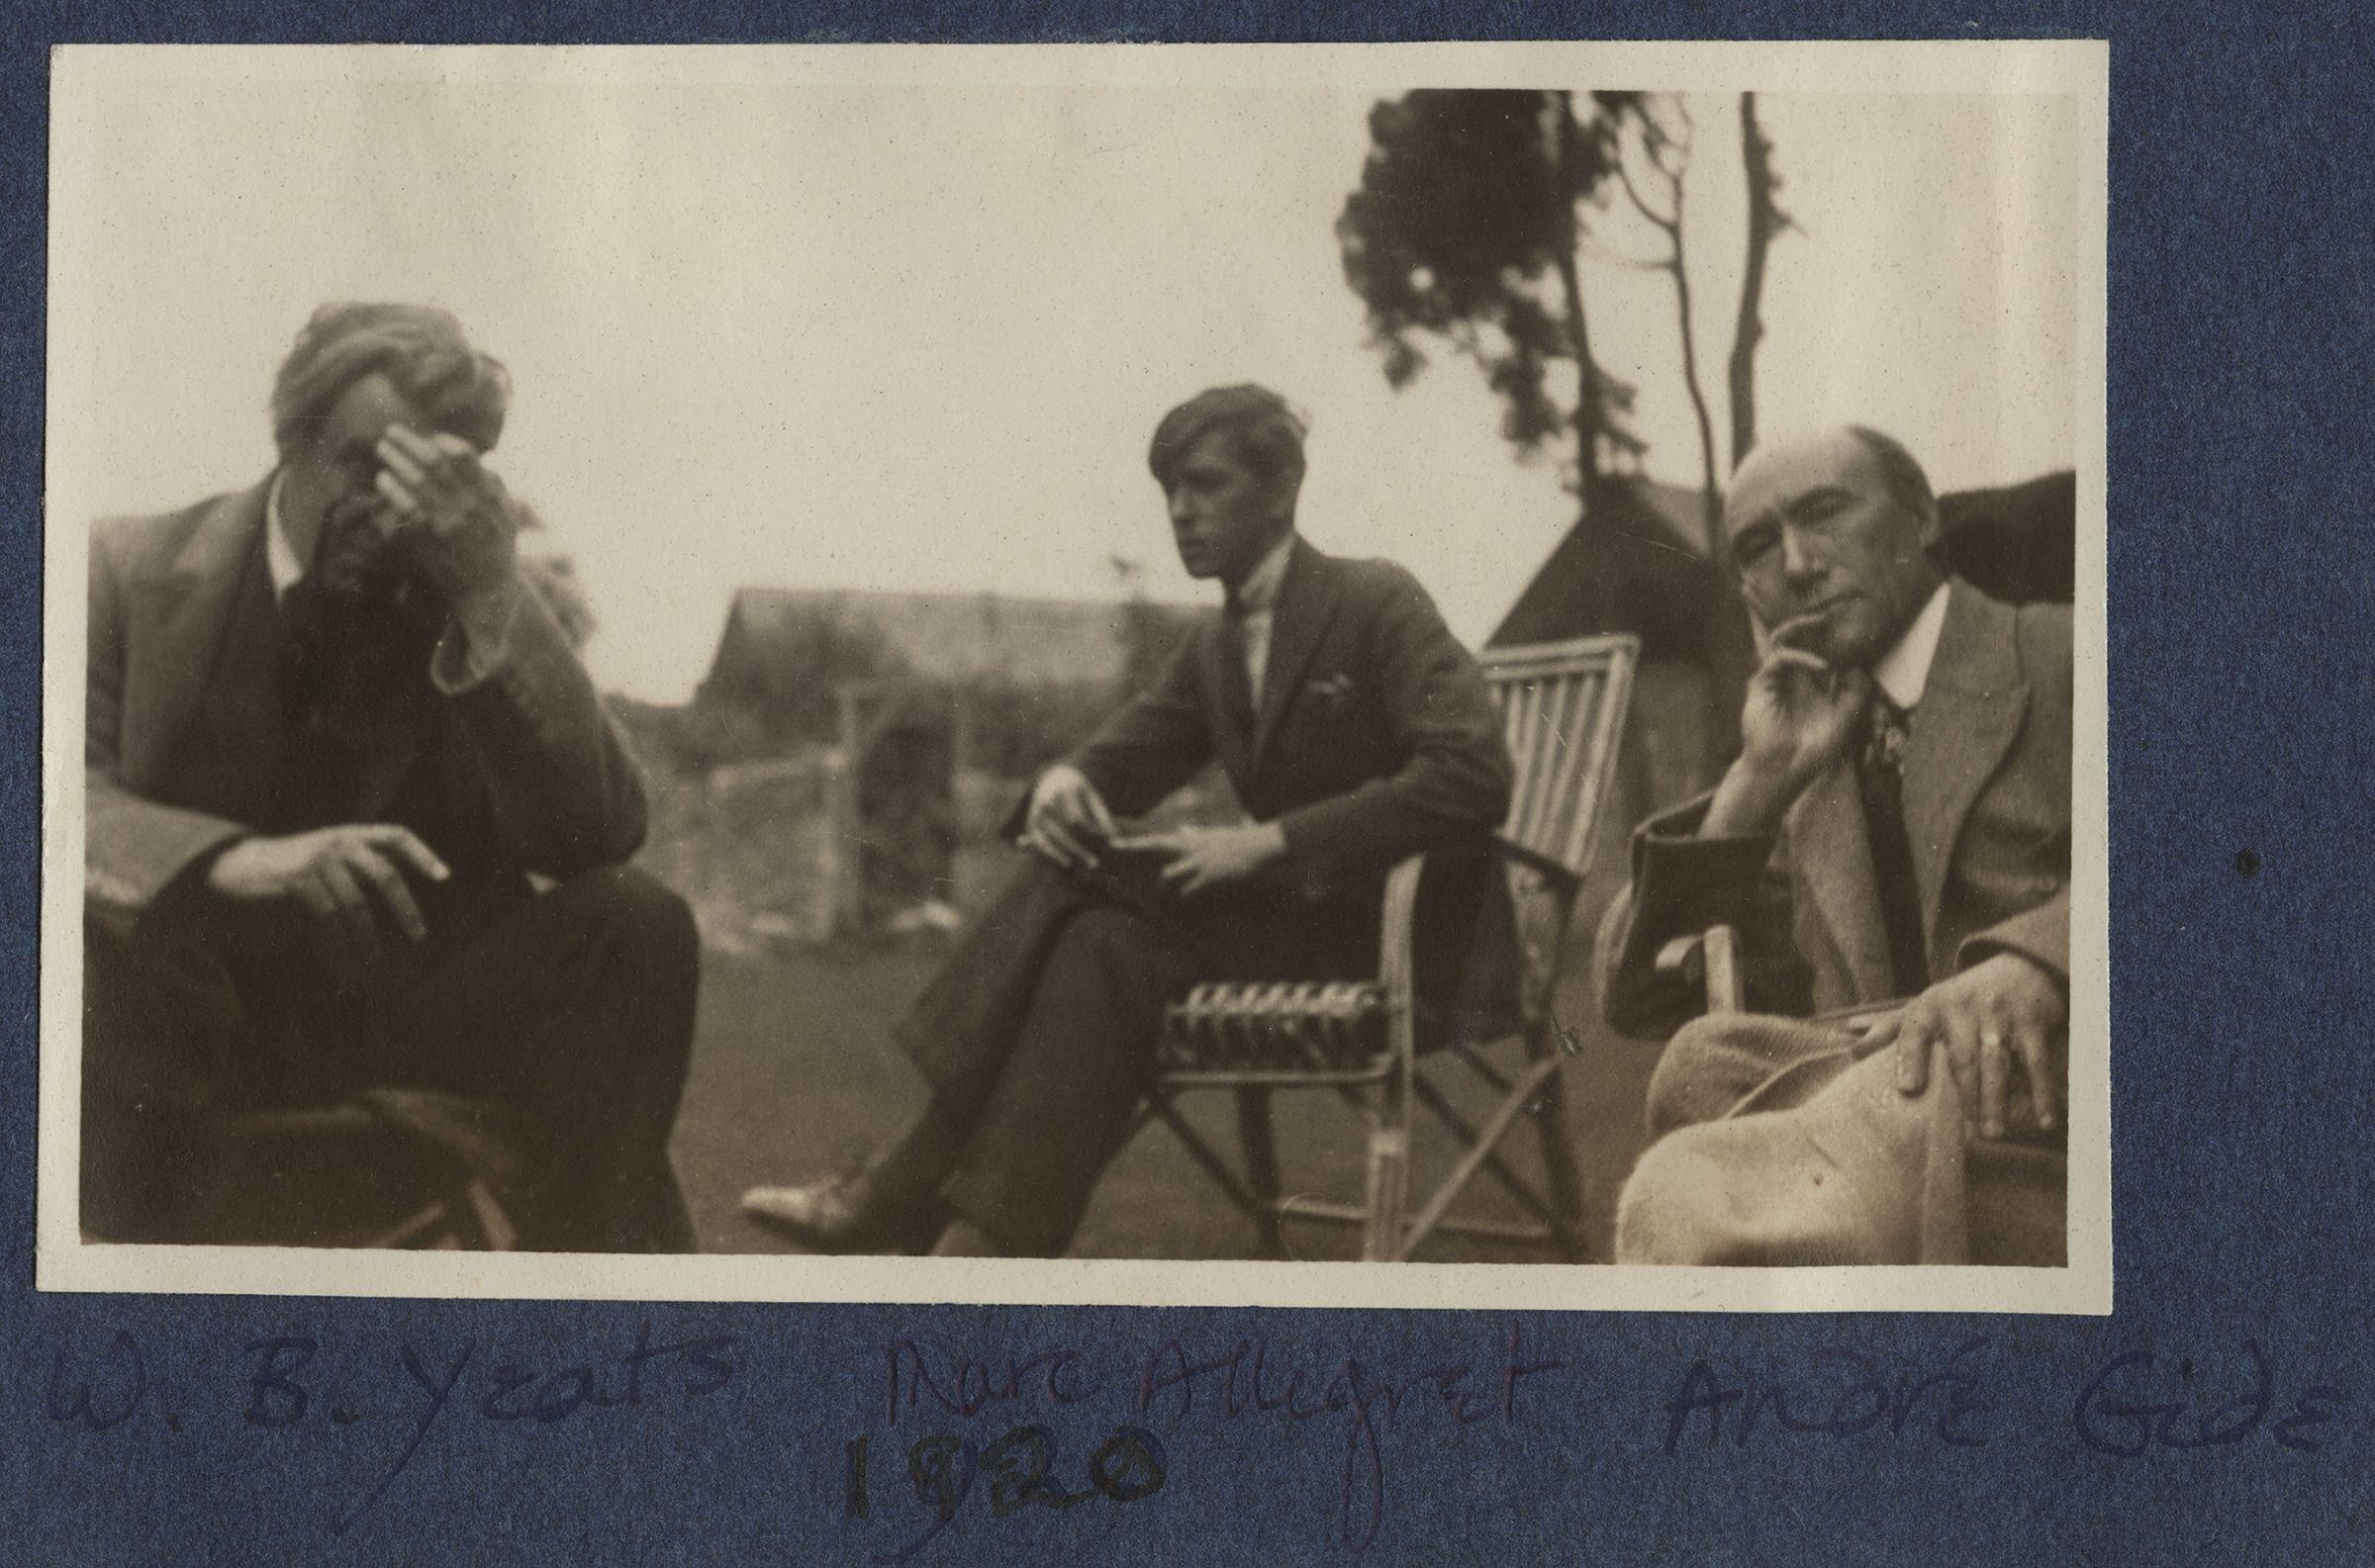 William_Butler_Yeats,_Marc_Allégret,_André_Gide_by_Lady_Ottoline_Morrell